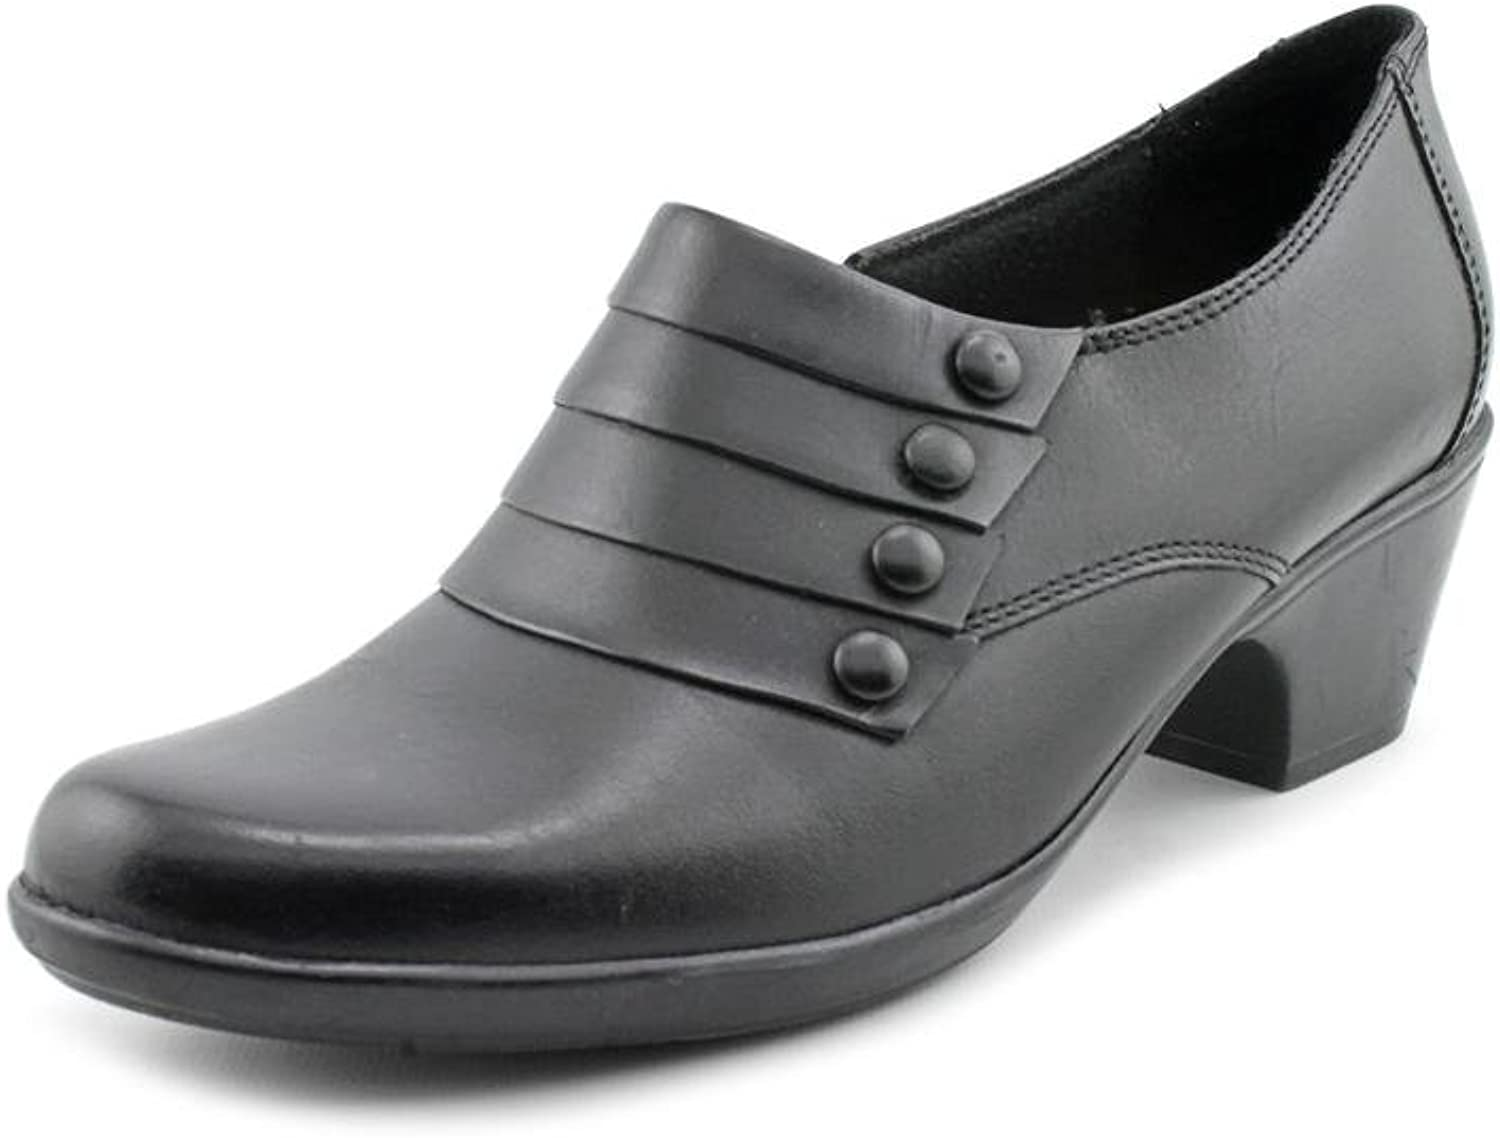 Clarks Ingalls Falls Womens Leather Pumps Heels shoes